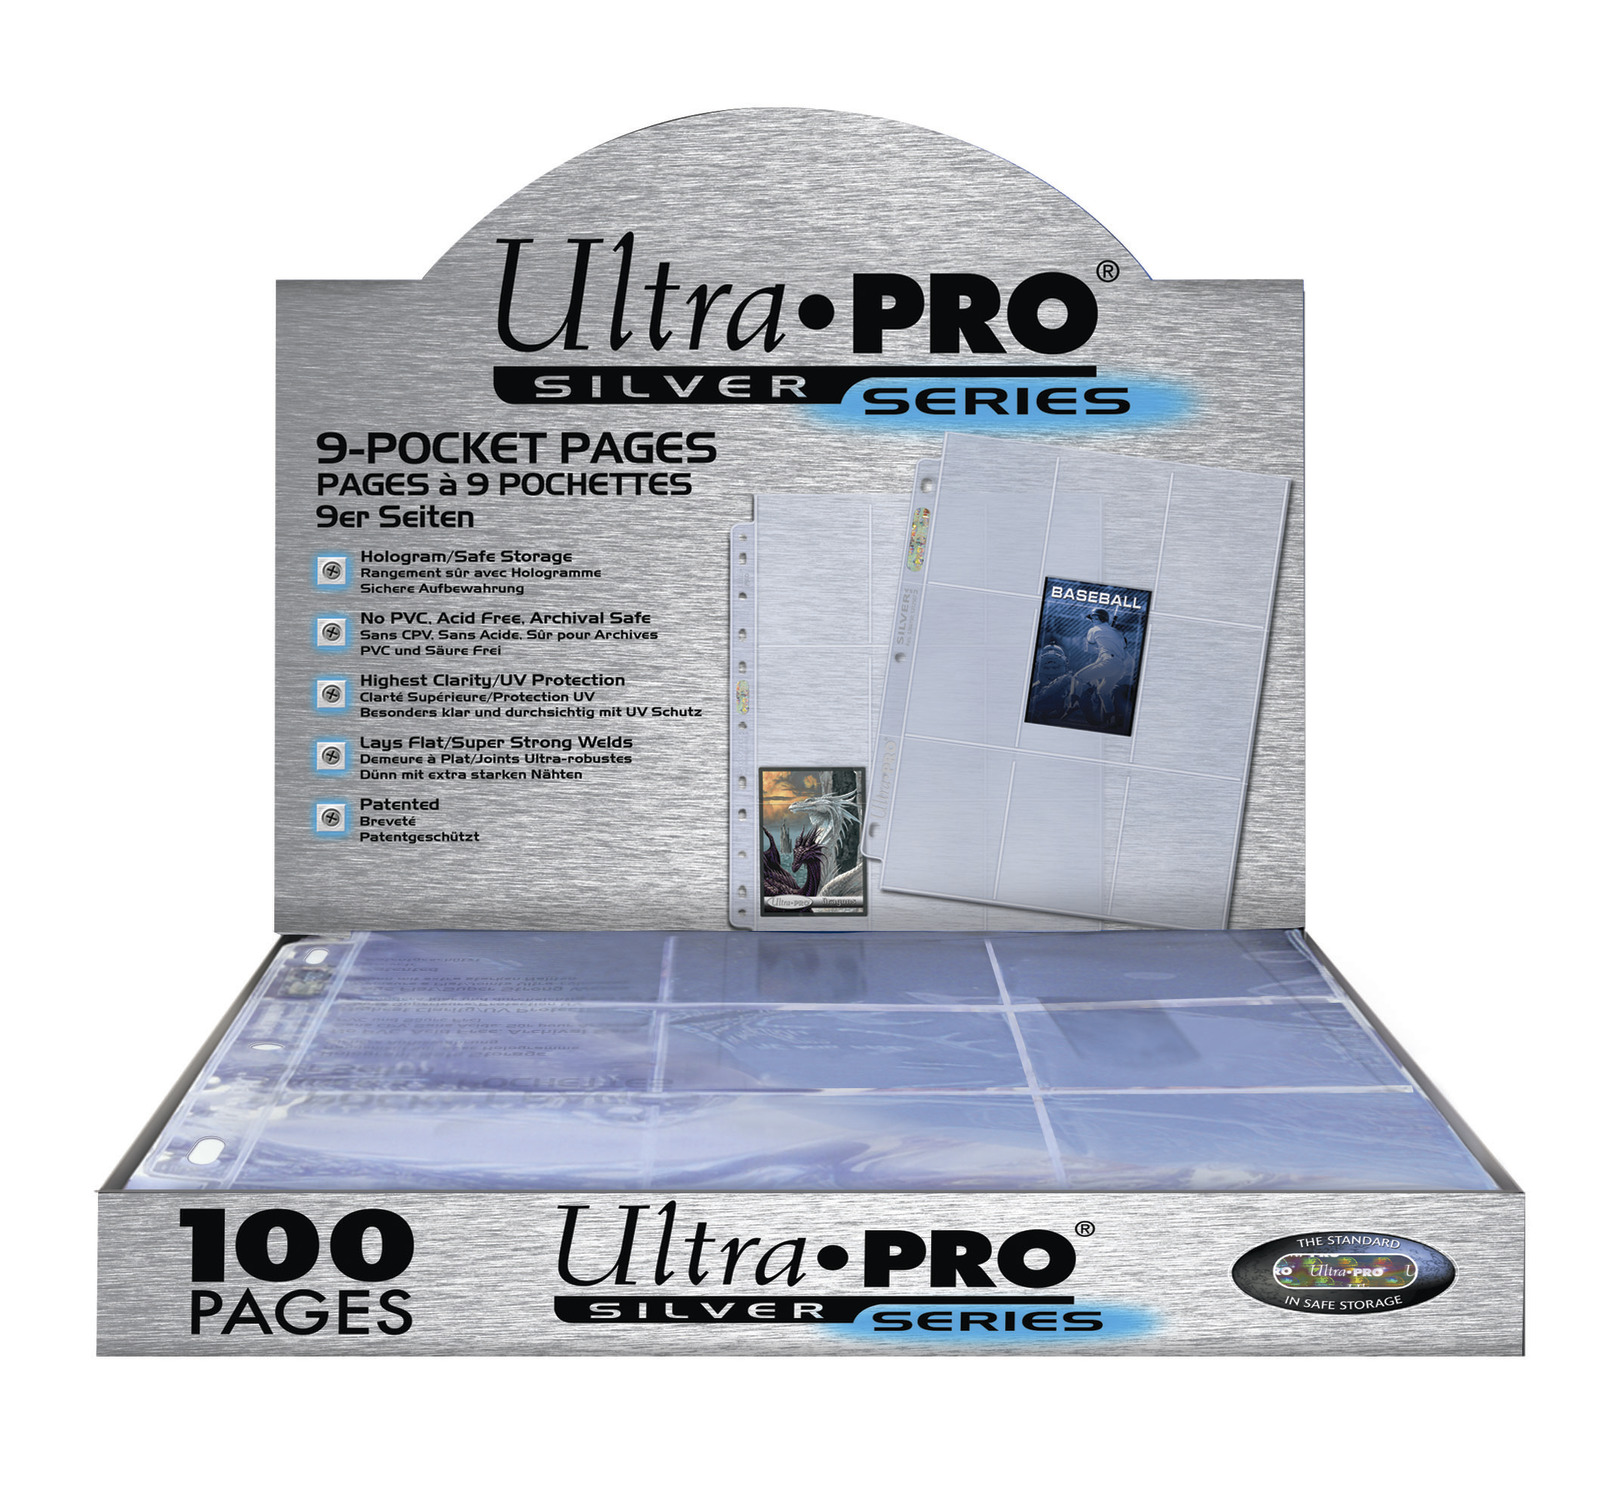 Ultra Pro 9 Pocket Silver Series Box (100 pages) image